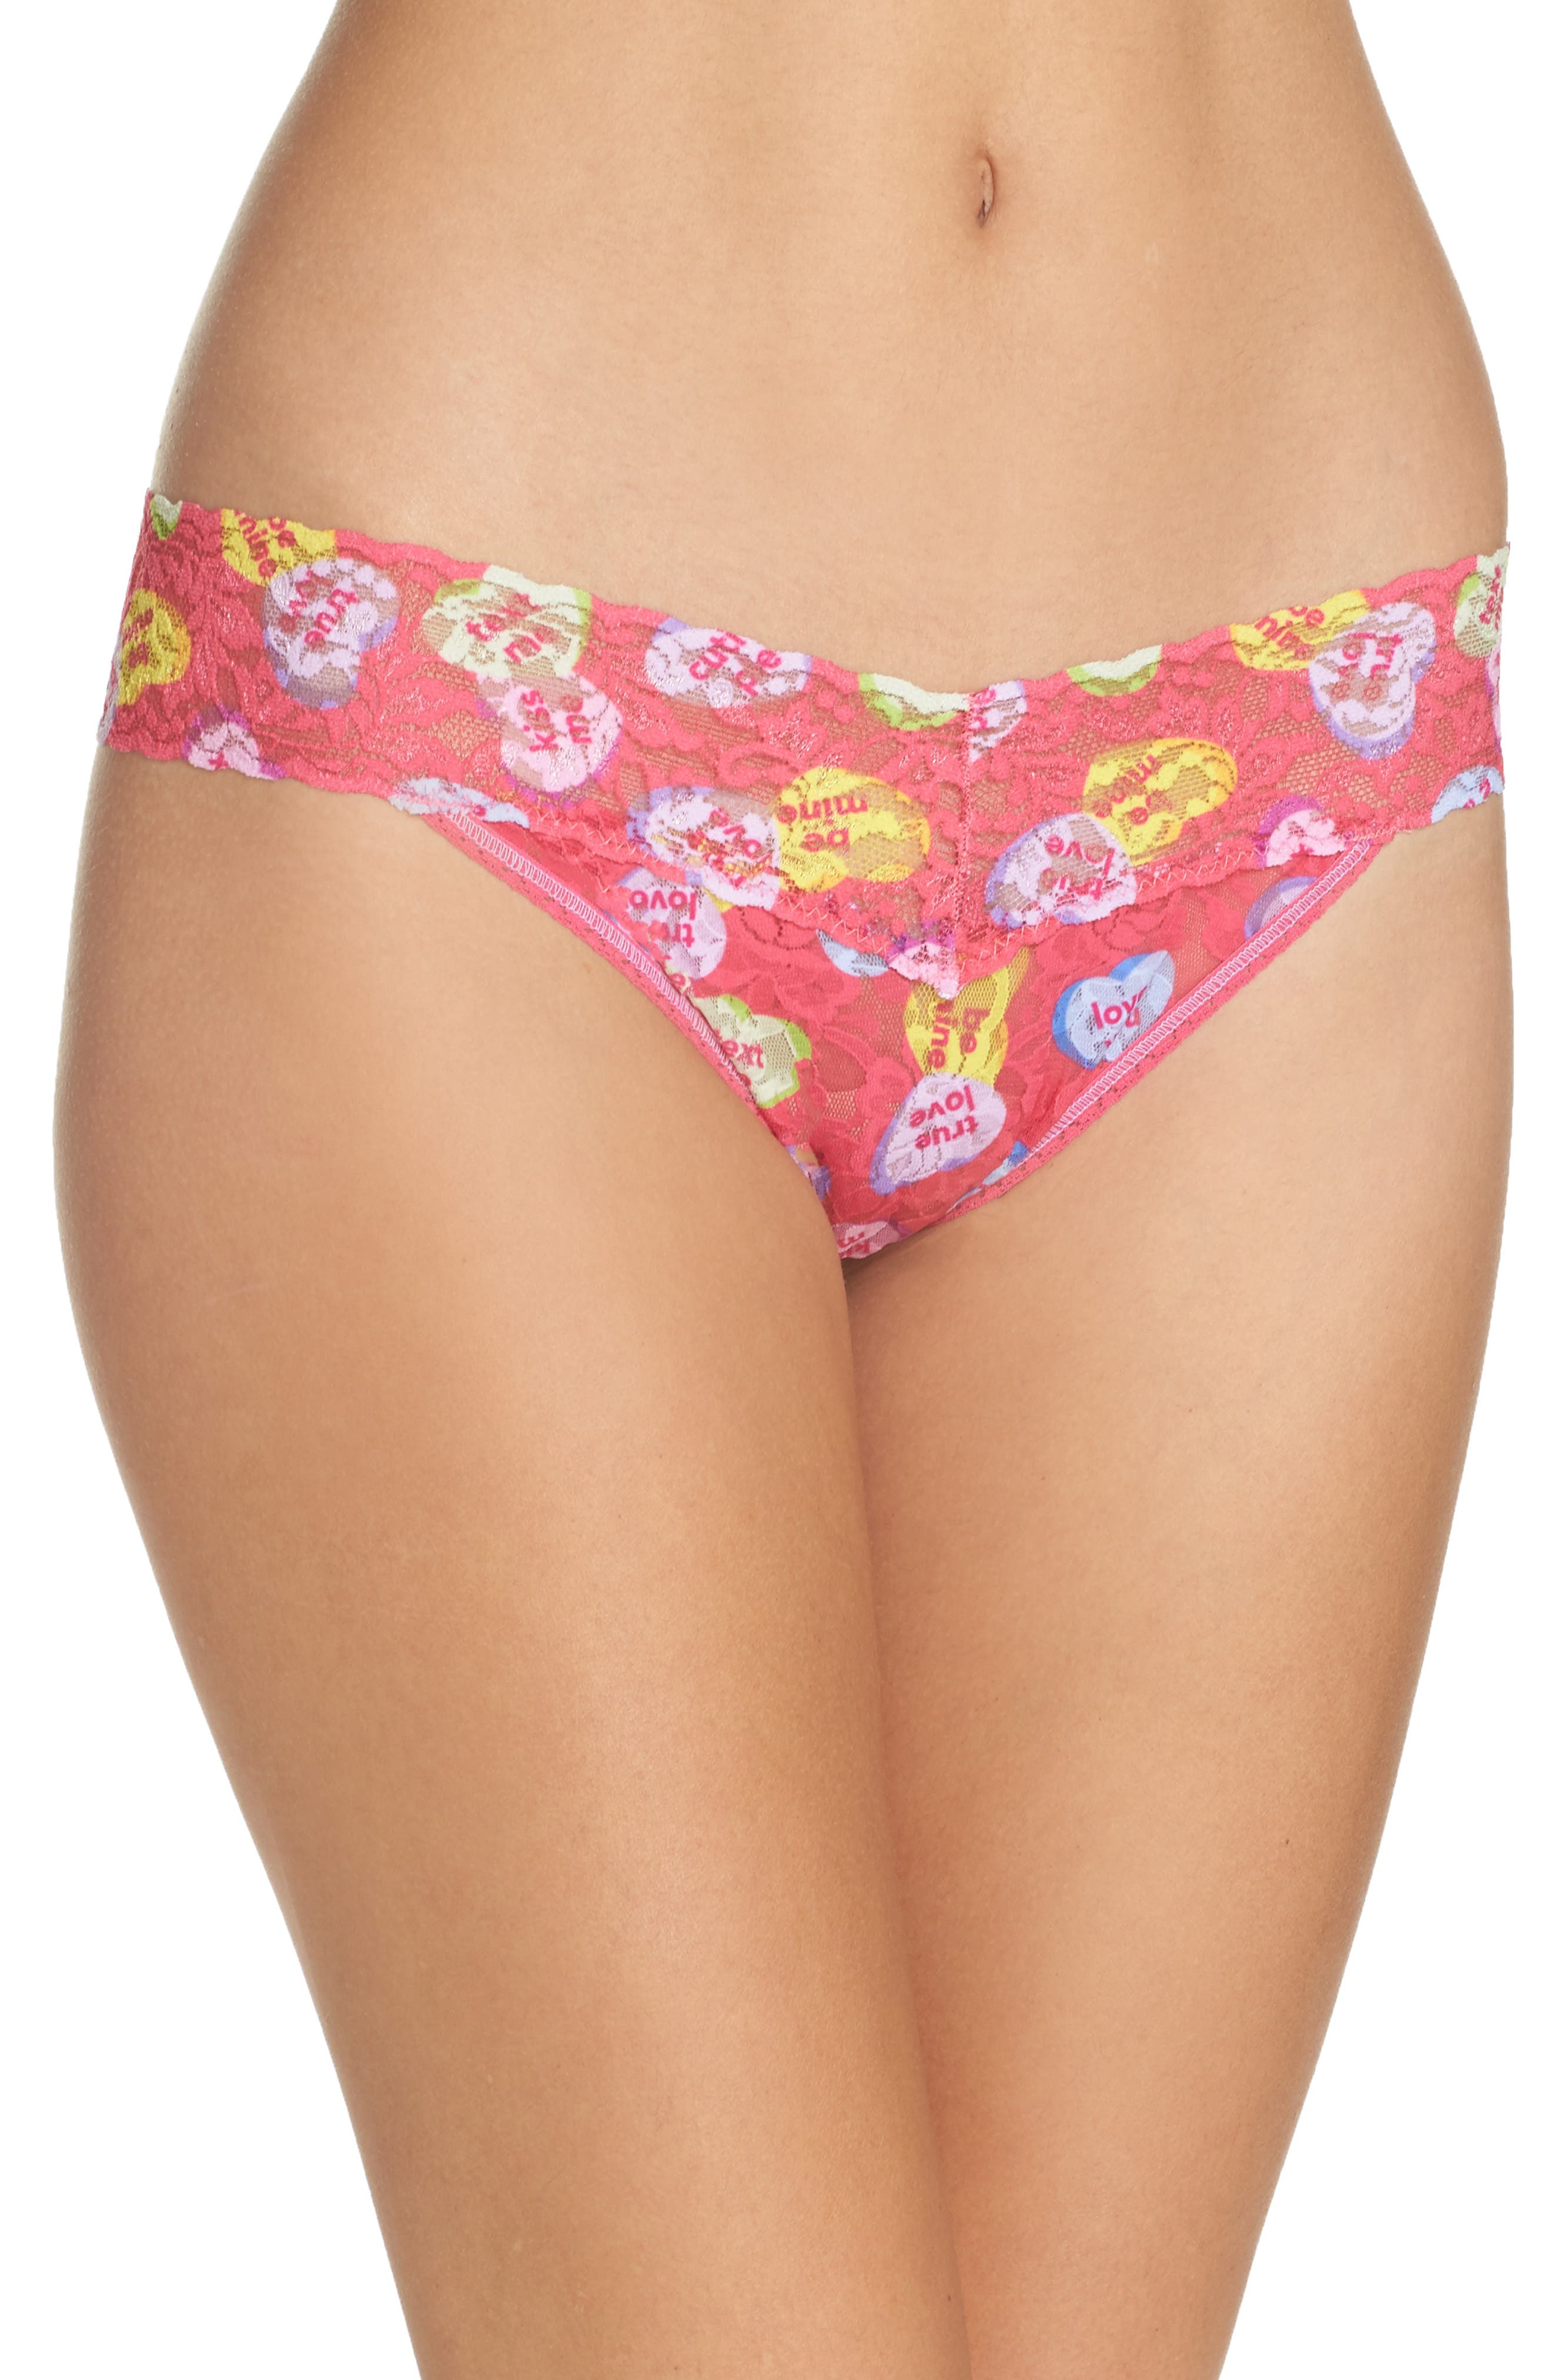 Valentines Original Rise Thong,                         Main,                         color, Pink Candy Hearts